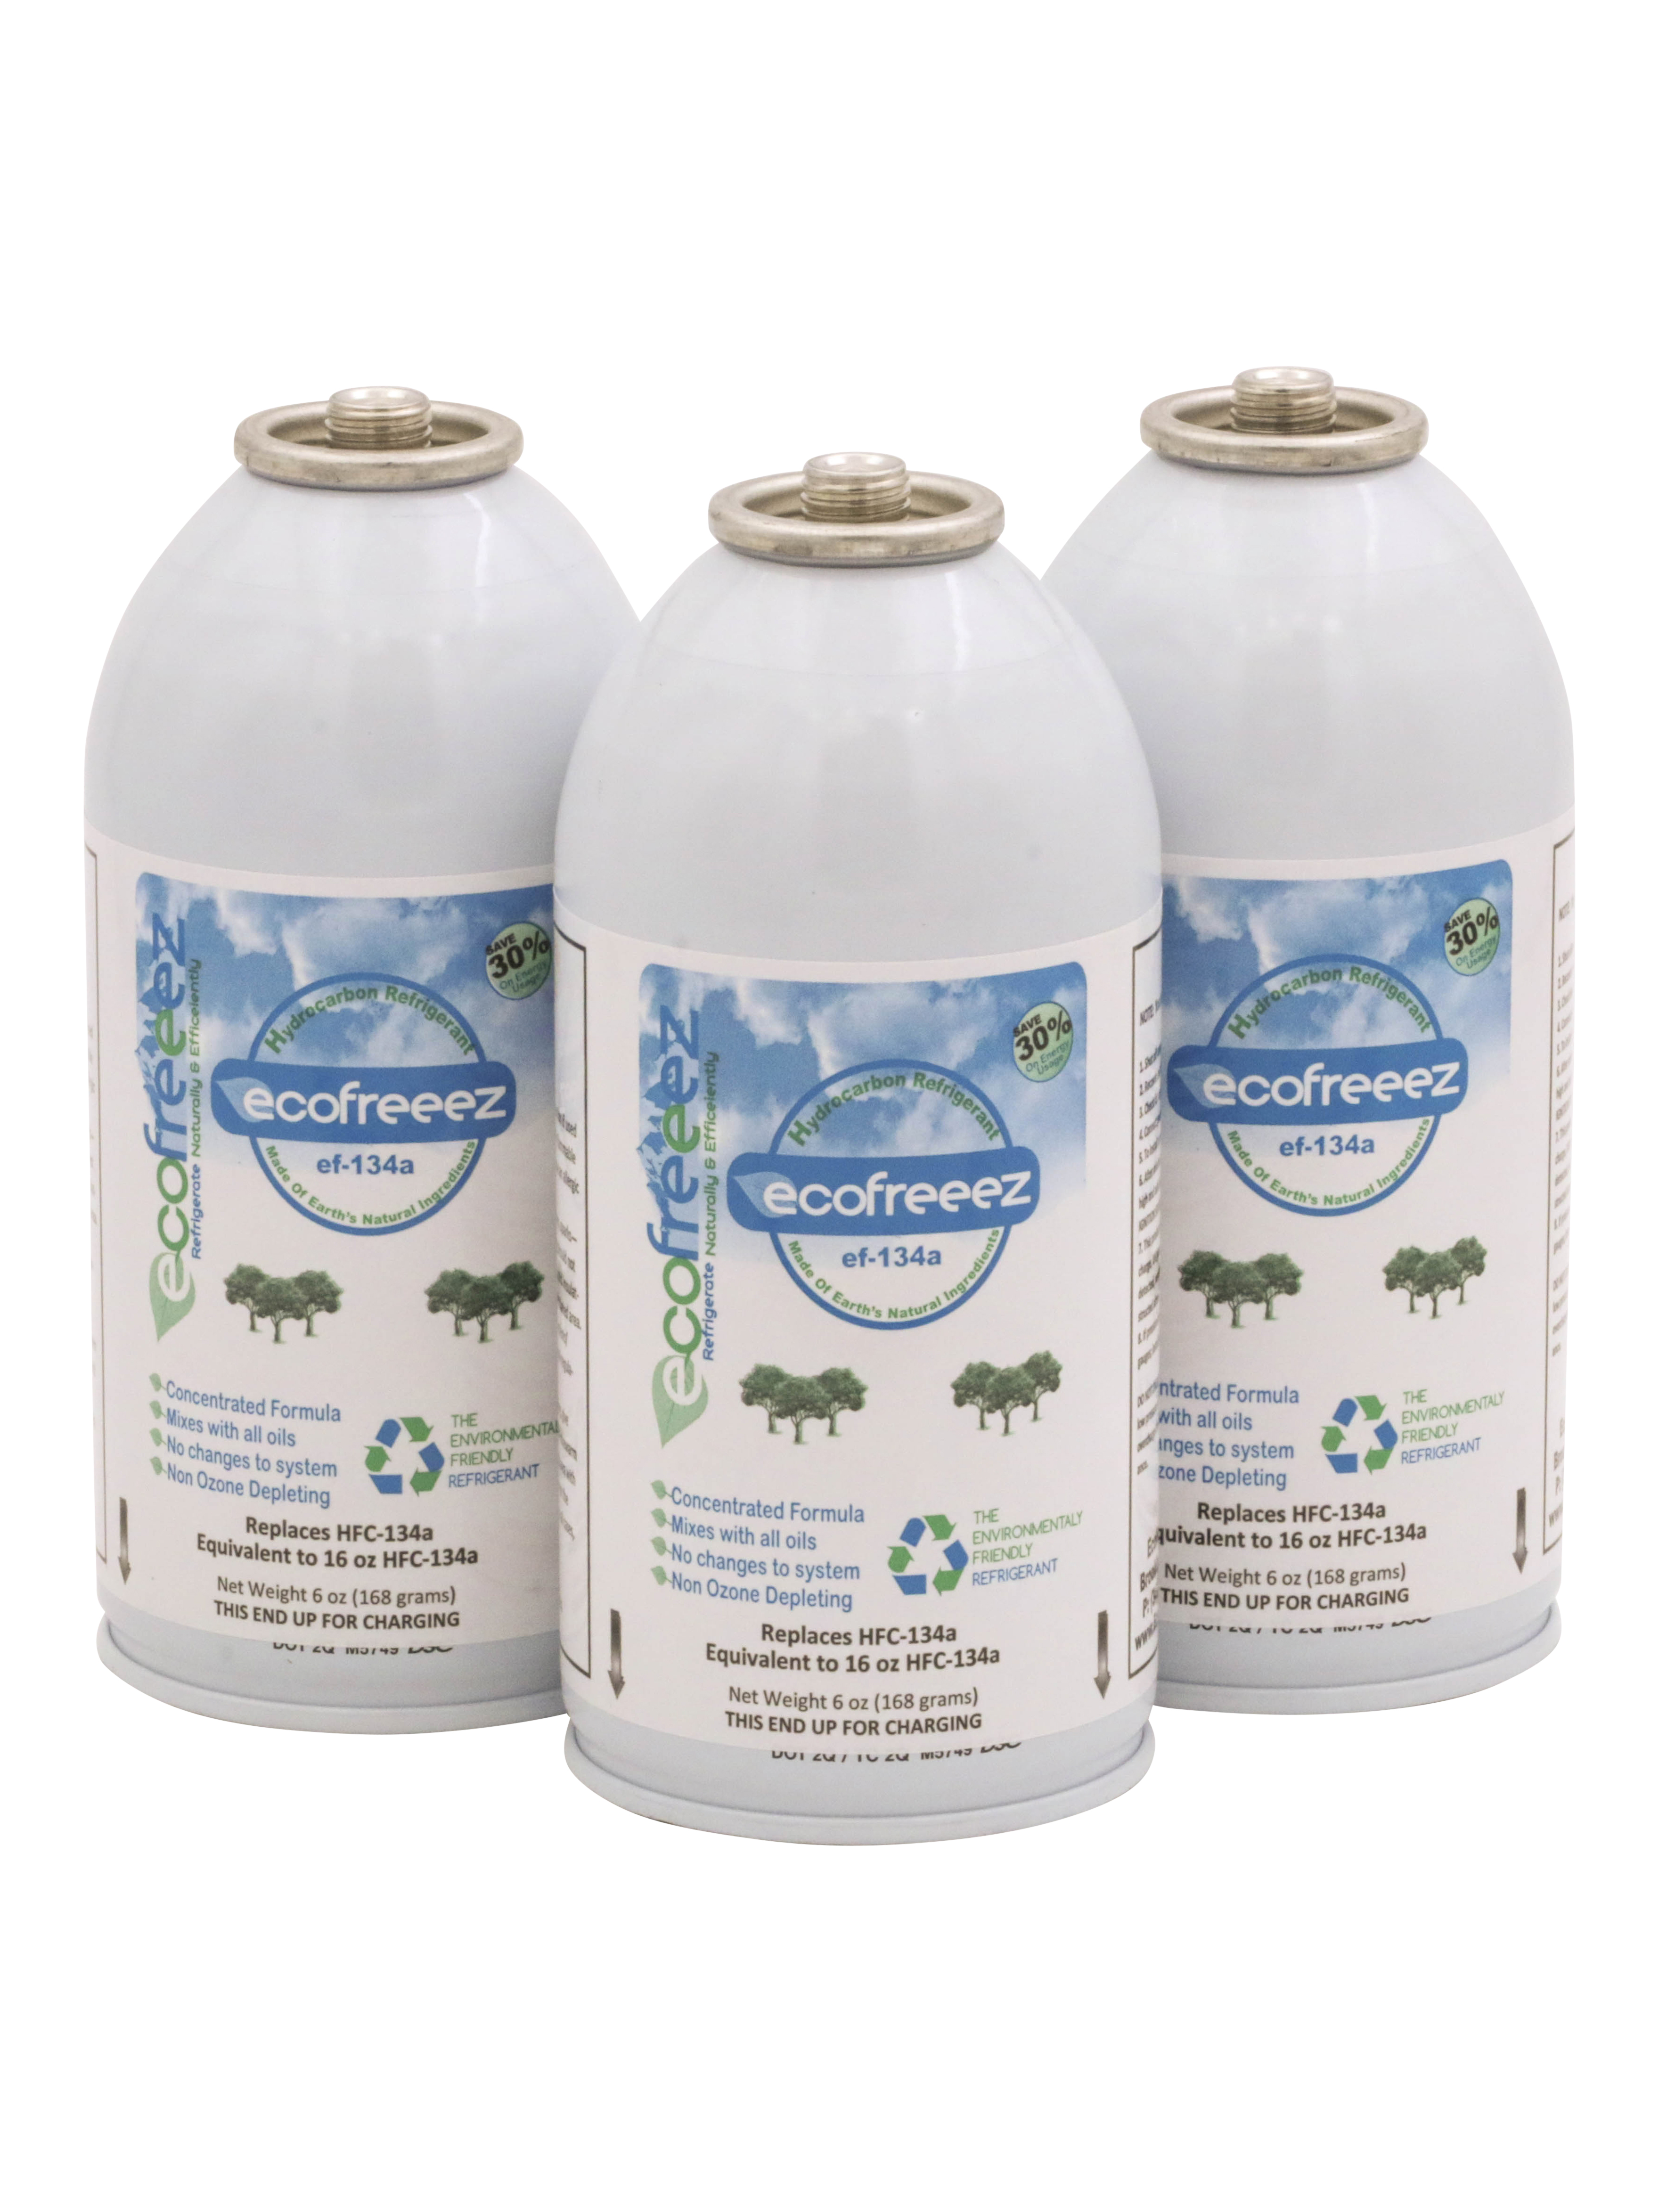 Ecofeeez ef-134a Hydrocarbon Refrigerant Natural & Environmental Friendly Non Ozone Depleting 6 oz cans 3 Pack